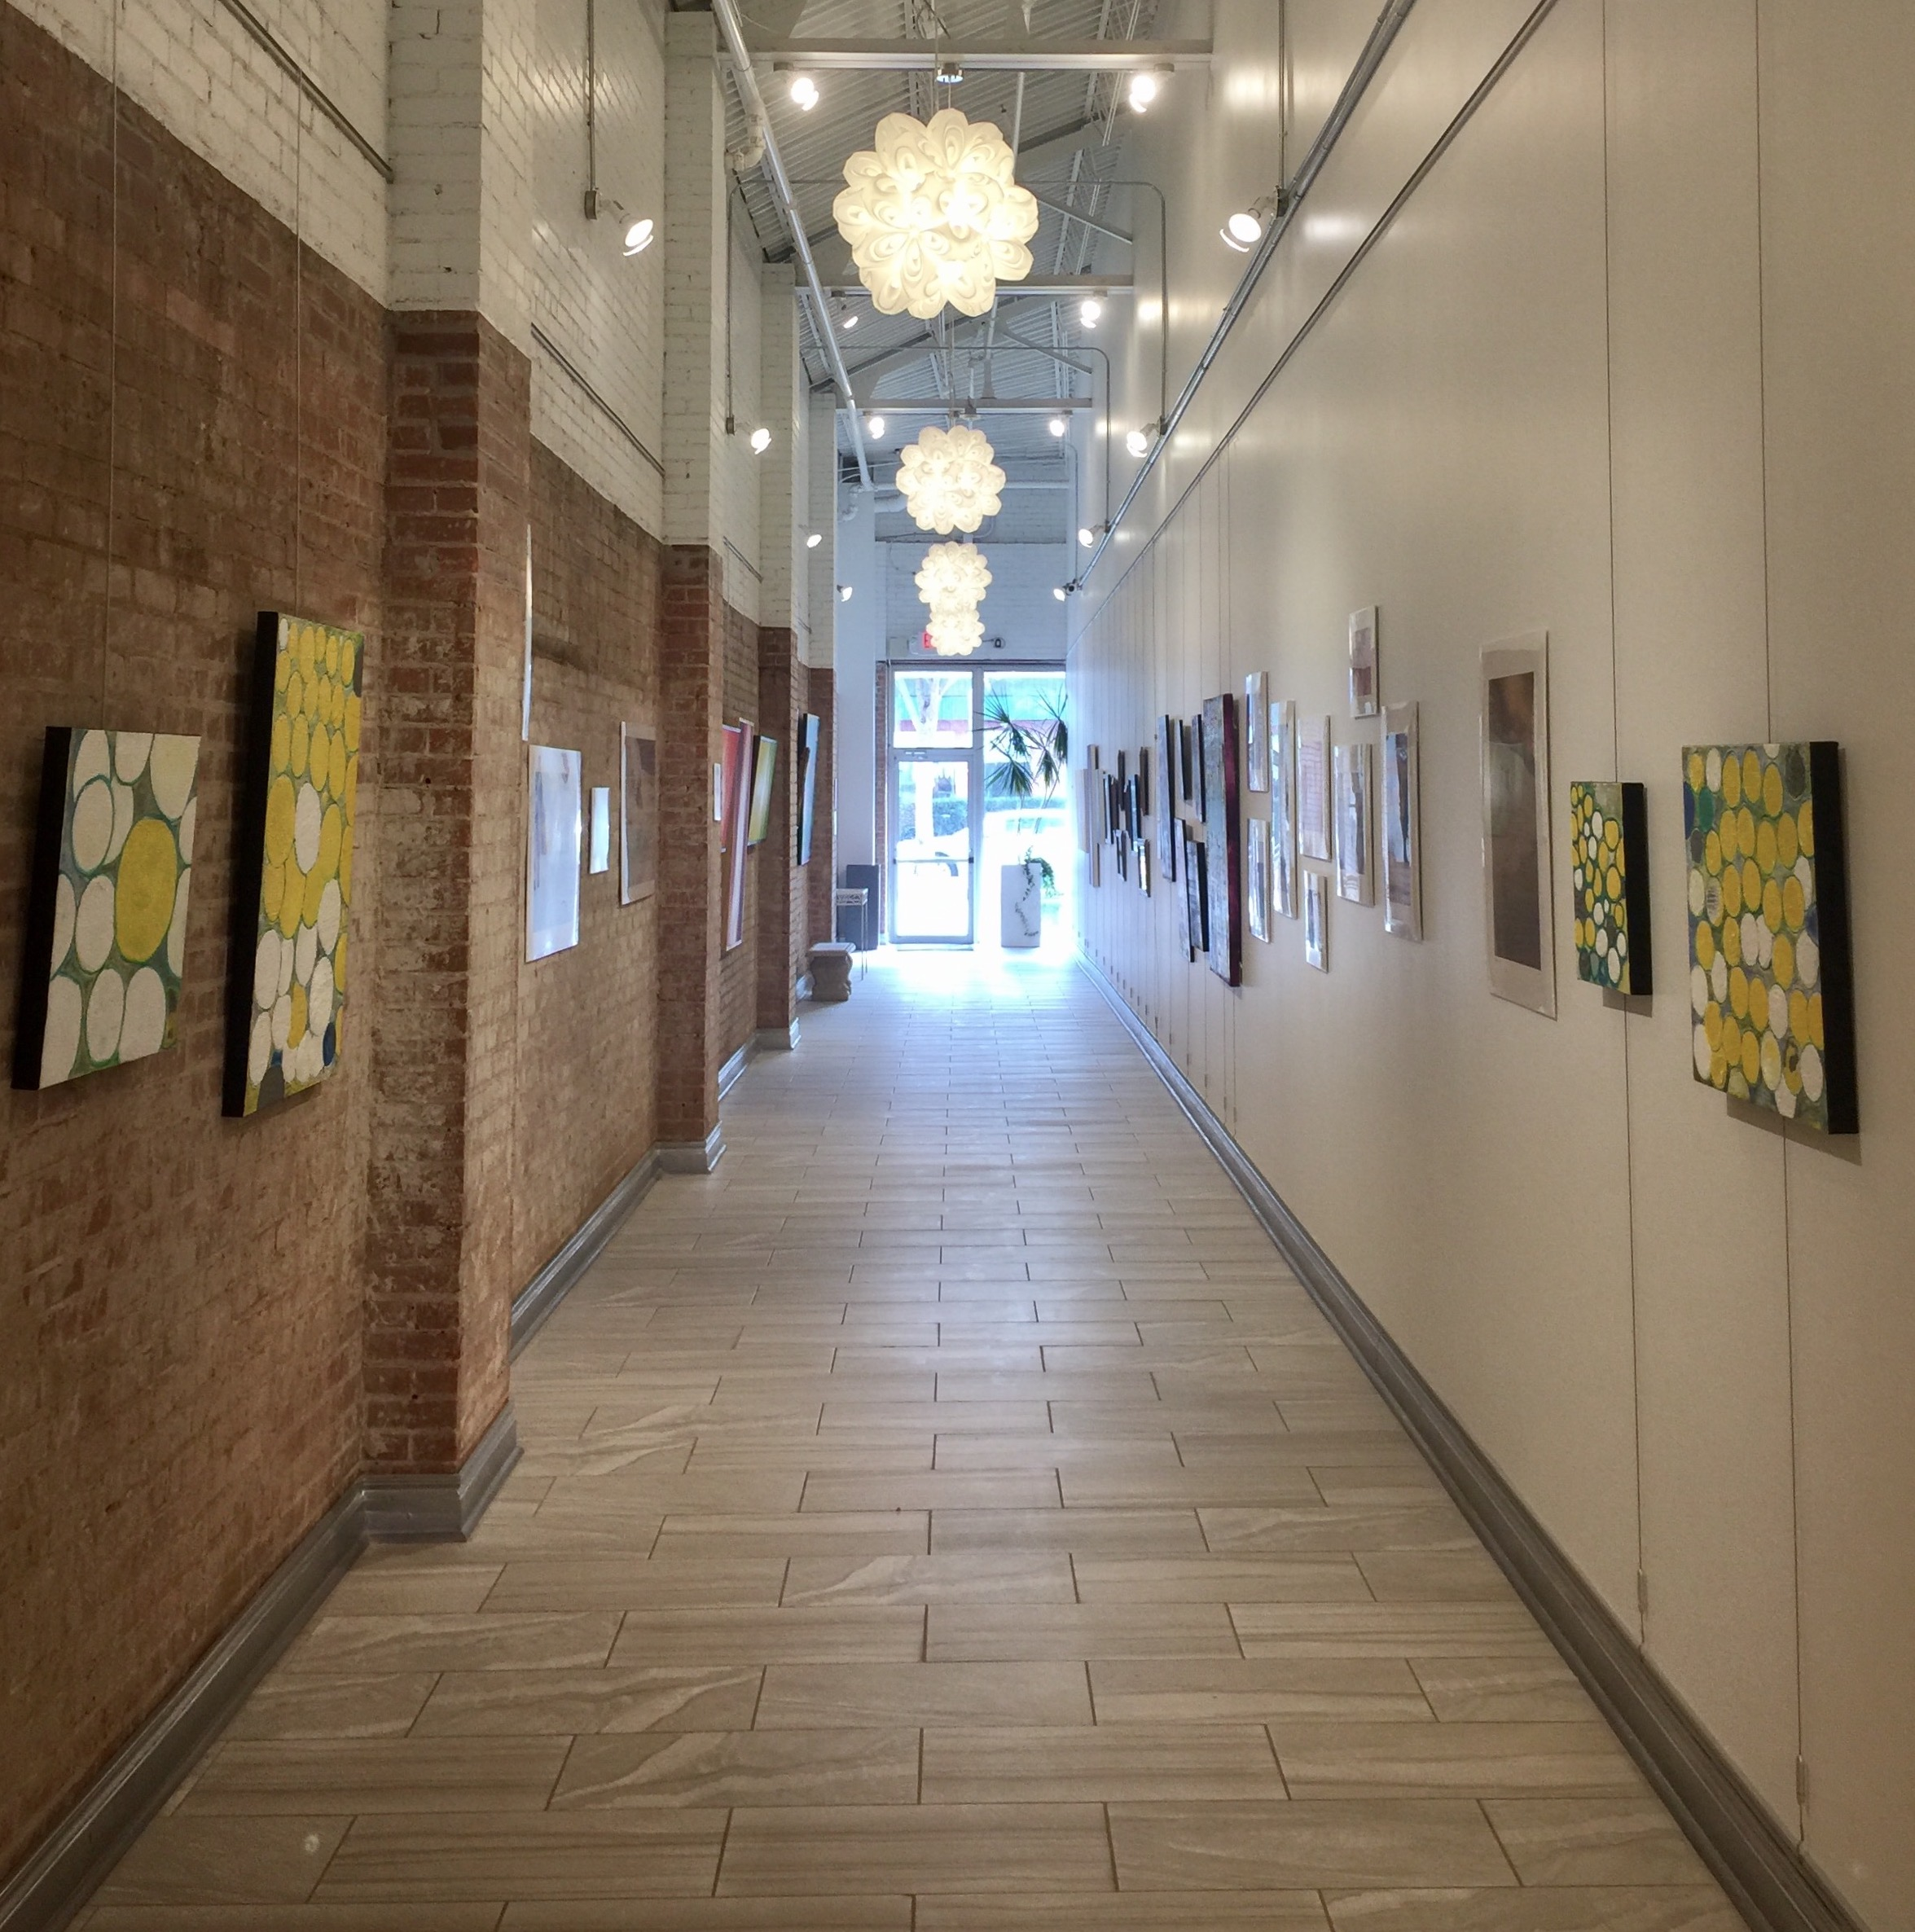 Installation view, facing South